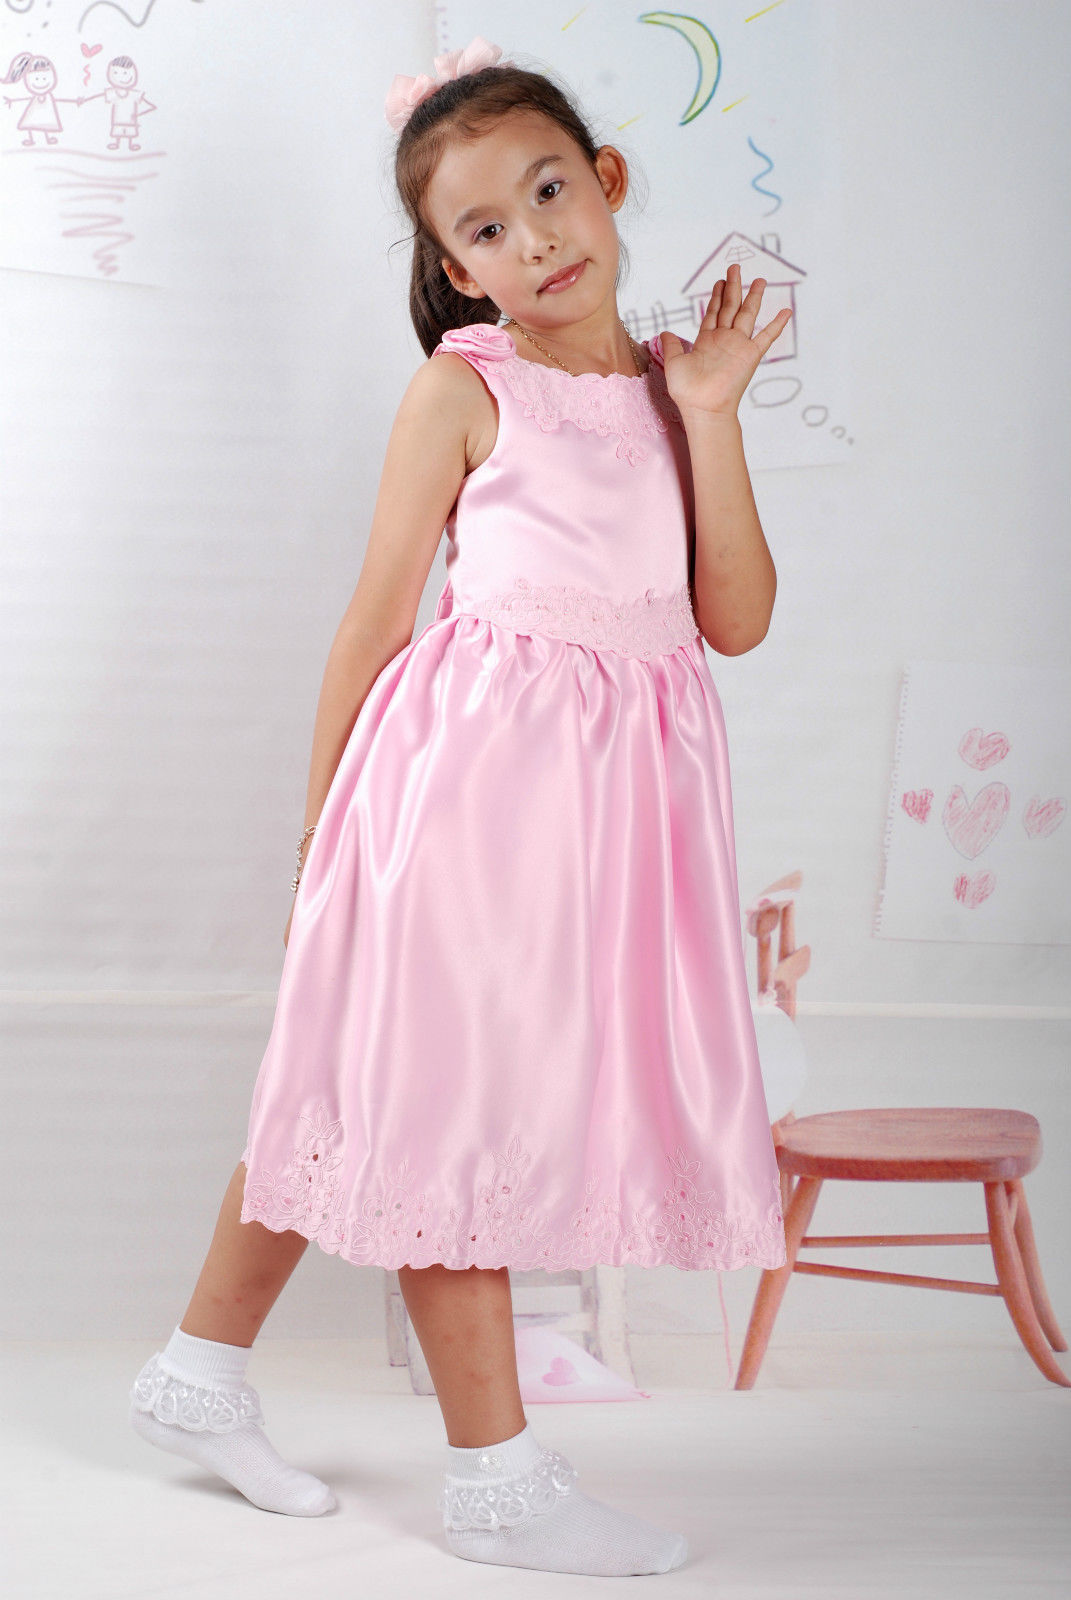 New Satin Flower Girl Party Bridesmaid Wedding Pageant Dress 18 Month to 5 Years image 2